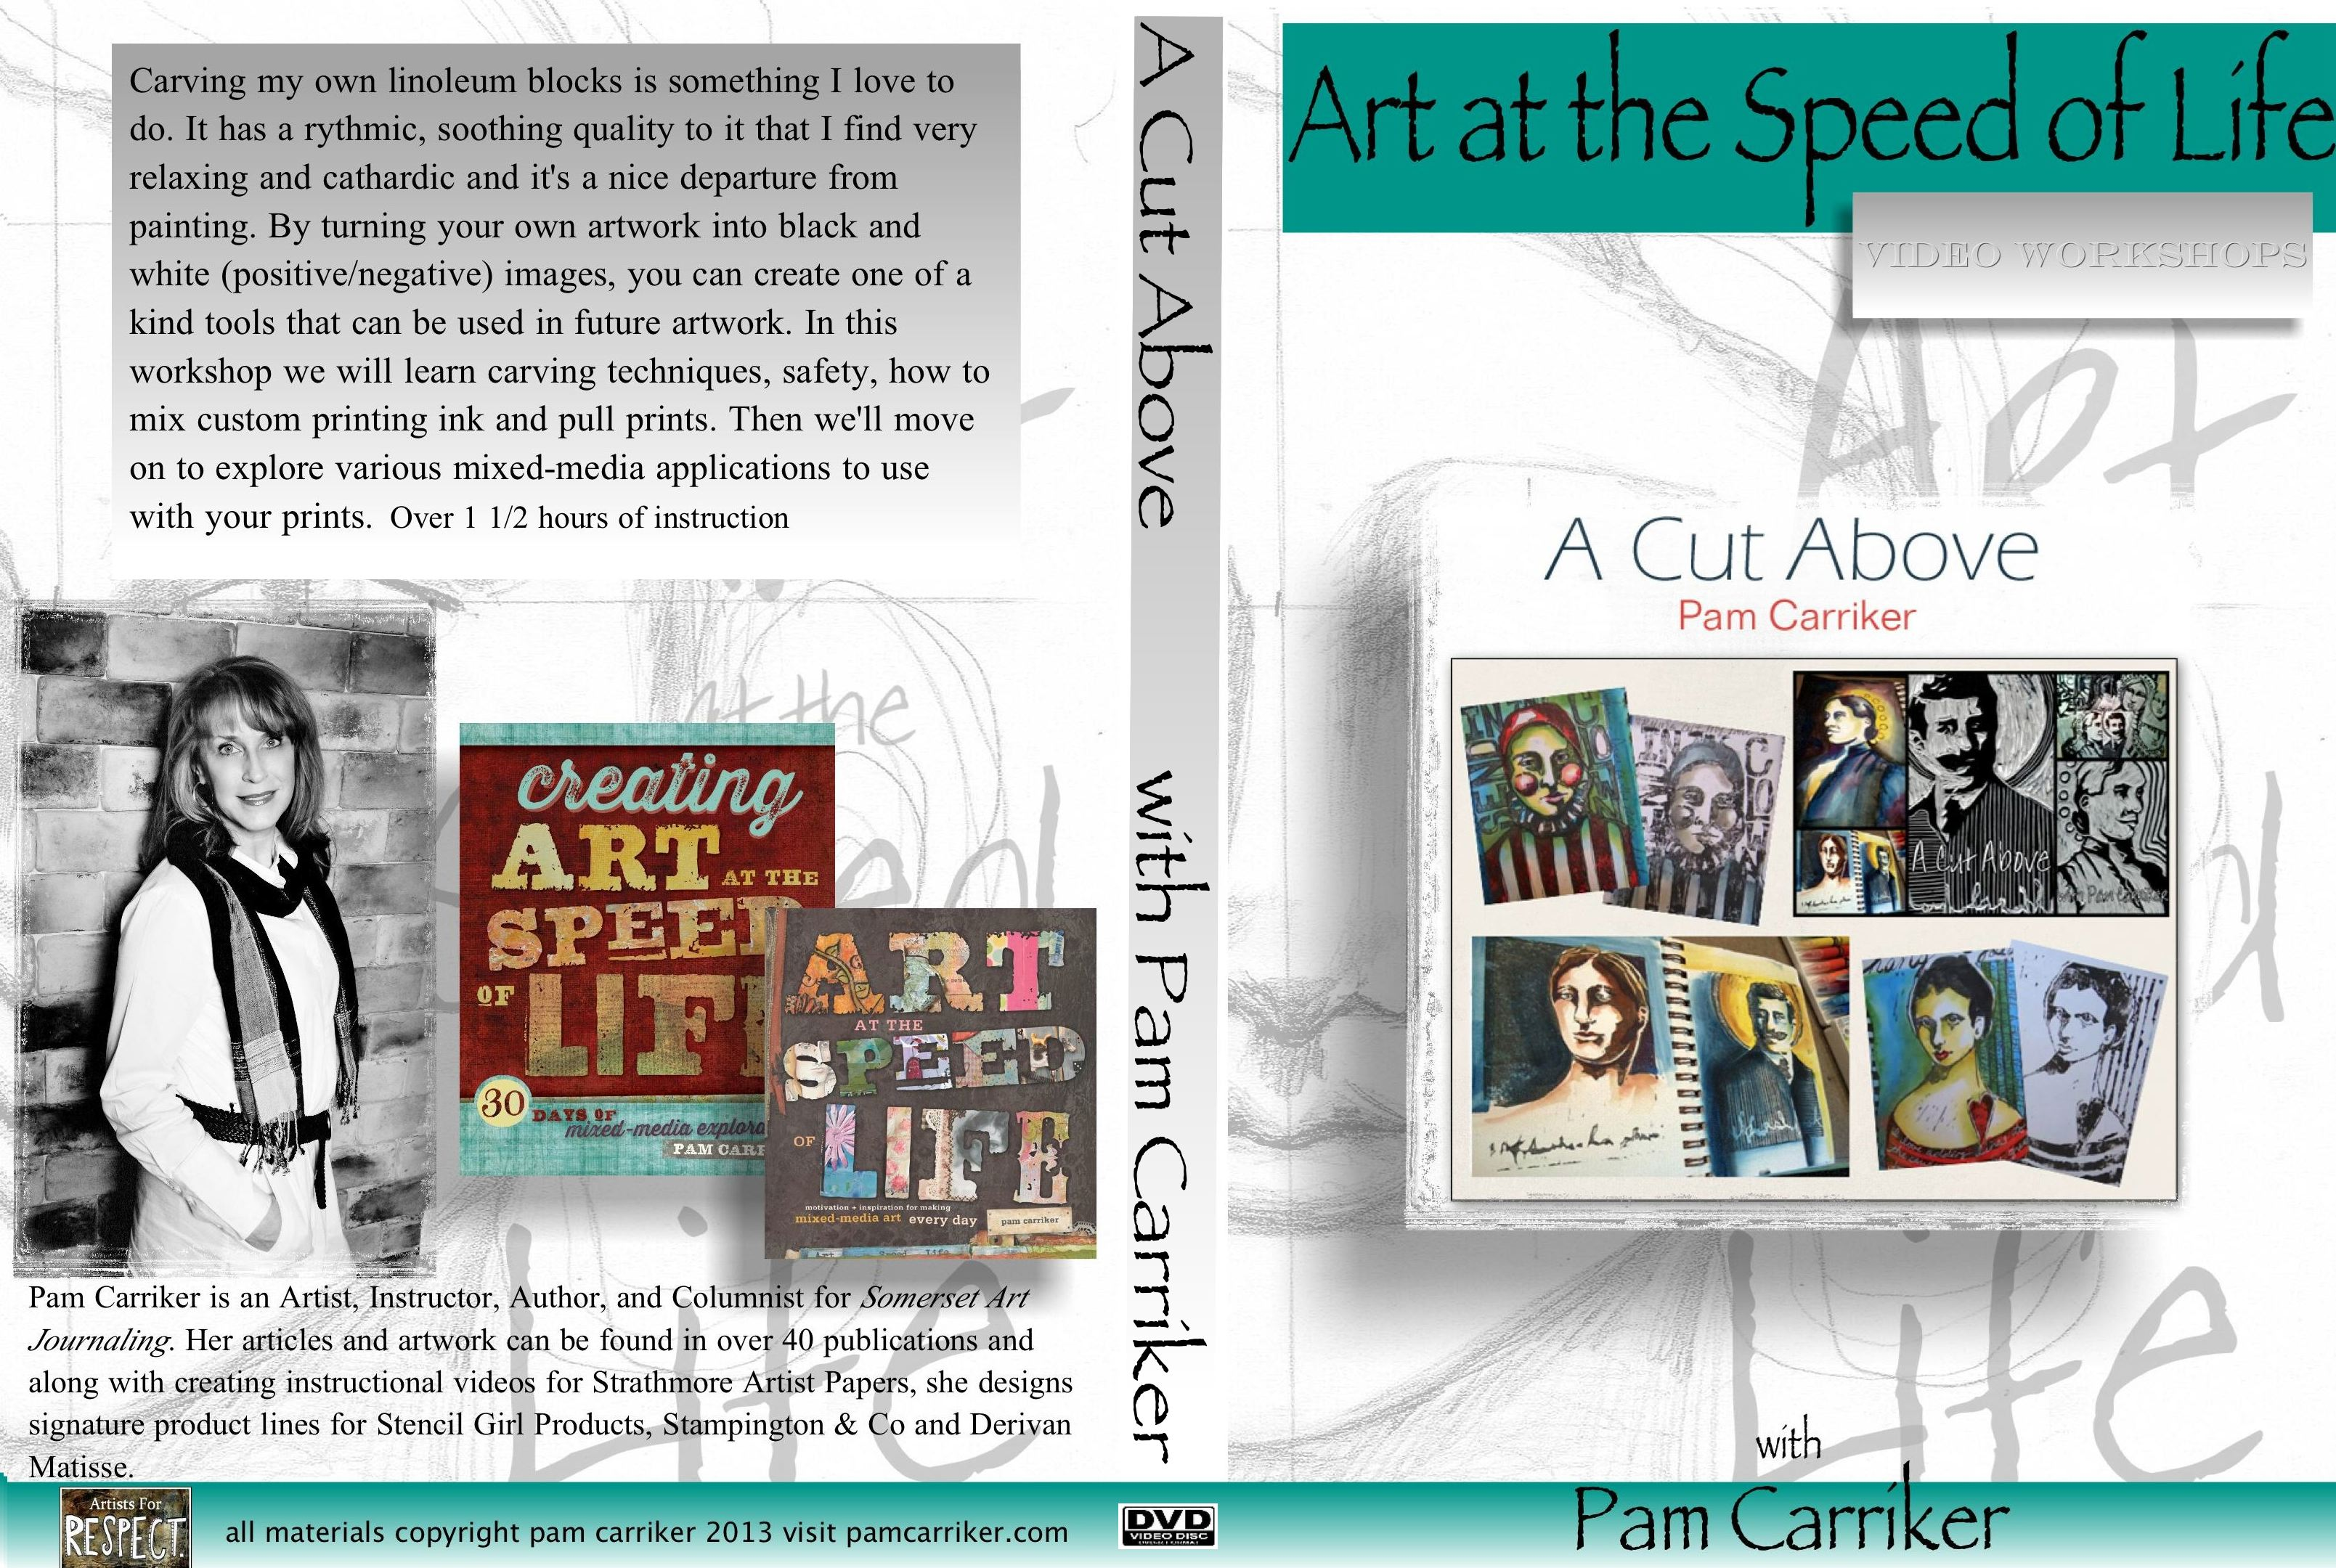 A Cut Above DVD Jacket 1.31.06 PM